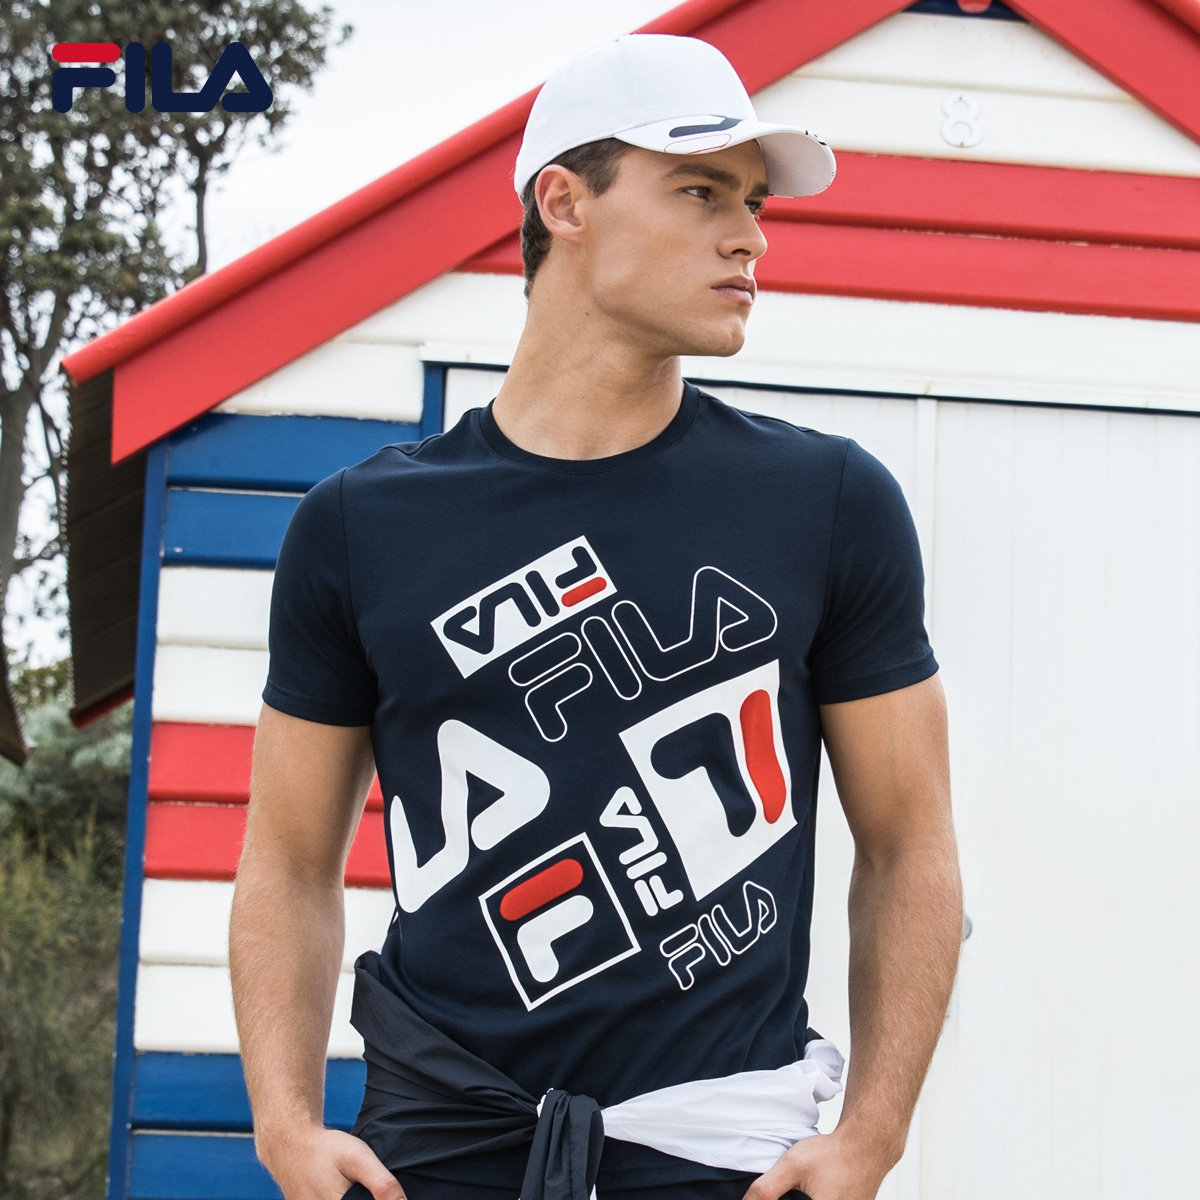 a2b41b22c8a FILA Fei Le Male T-shirt 2018 official authentic short-sleeved T male  fashion